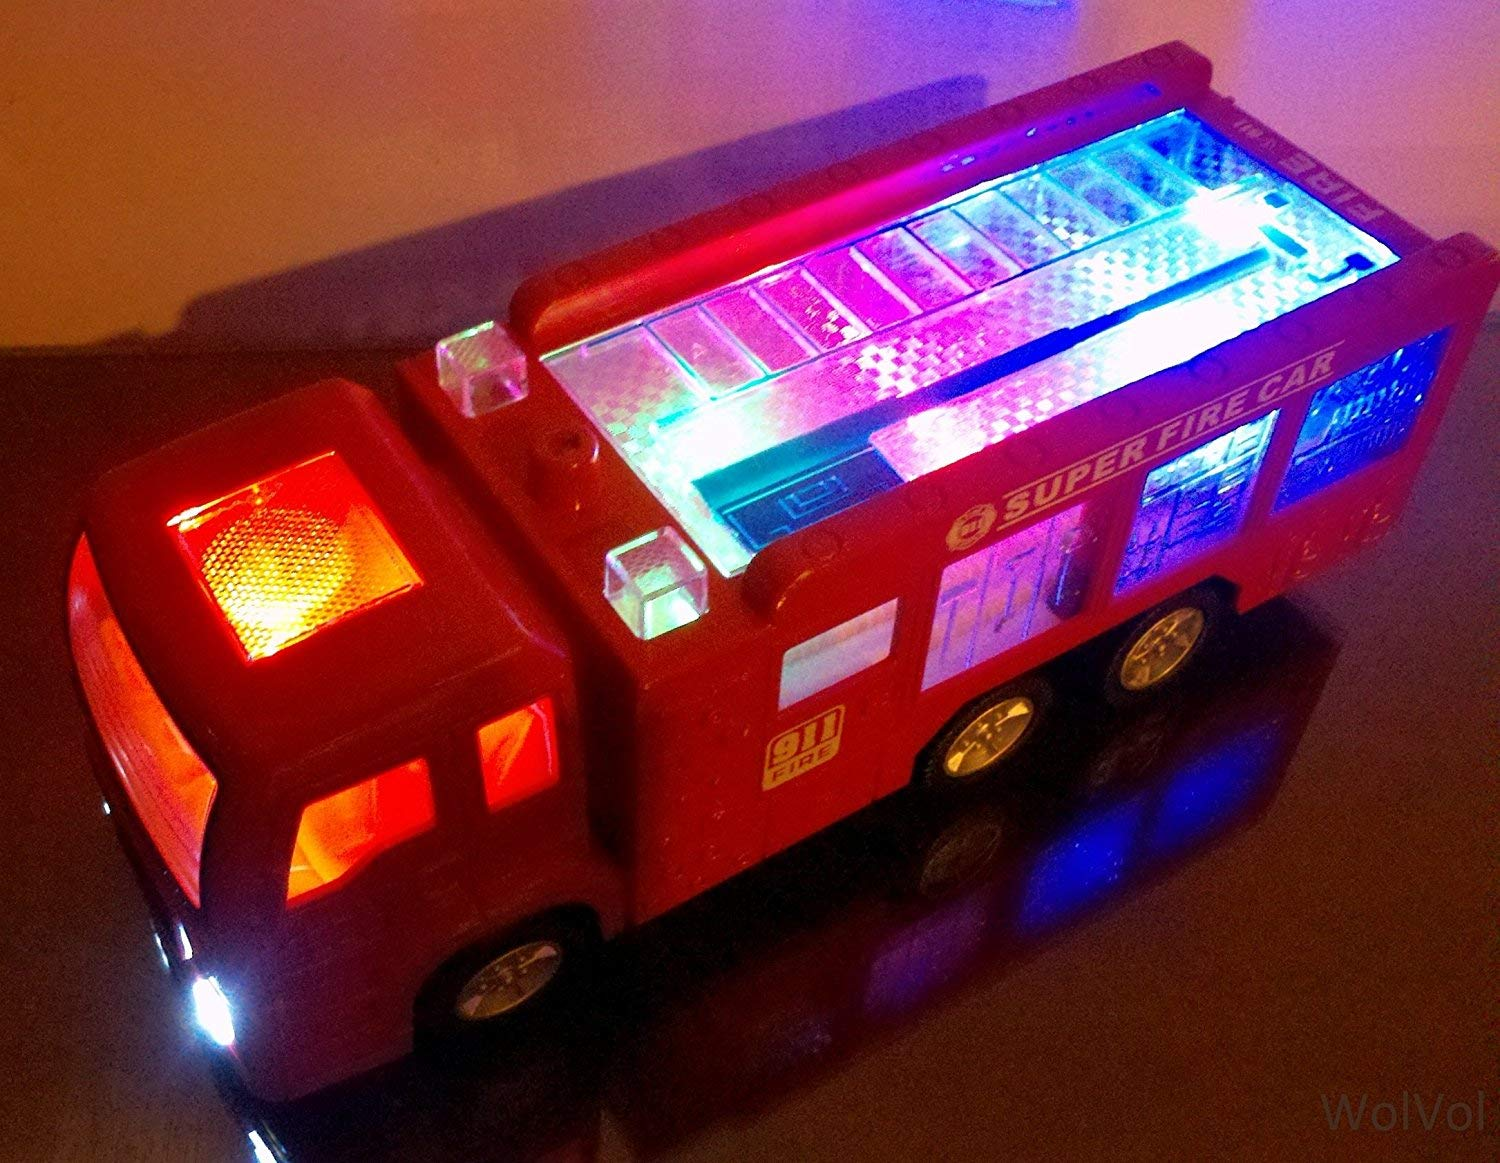 WolVolk Electric Fire Truck Toy with Stunning 3D Lights and Sirens, goes Around and Changes Directions on Contact - Great Gift Toys for Kids